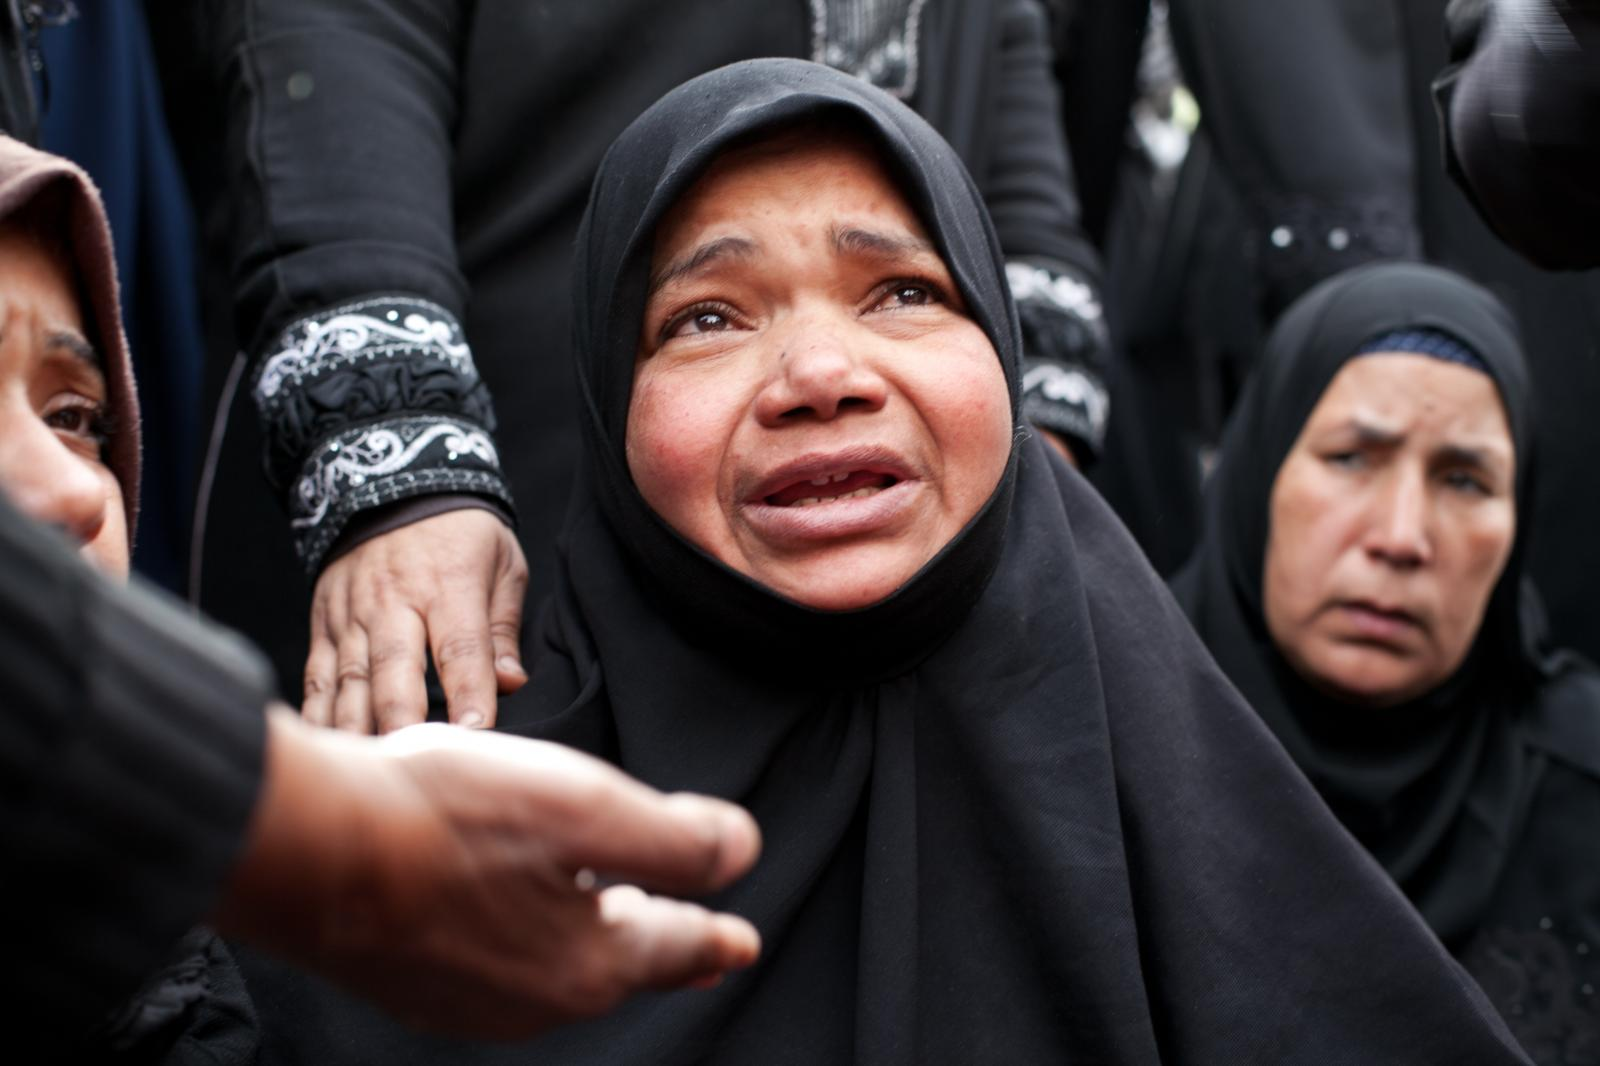 Women mourn for their relative, Ahmed Abdul Khalim, 24, who was killed with a bullet to his head during recent clashes with Egyptian security forces in Port Said, Egypt, Friday, March 8, 2013. Egypt's police forces have withdrawn from the streets of this restive city on the Suez Canal, handing over security to the military after nearly a week of deadly clashes.